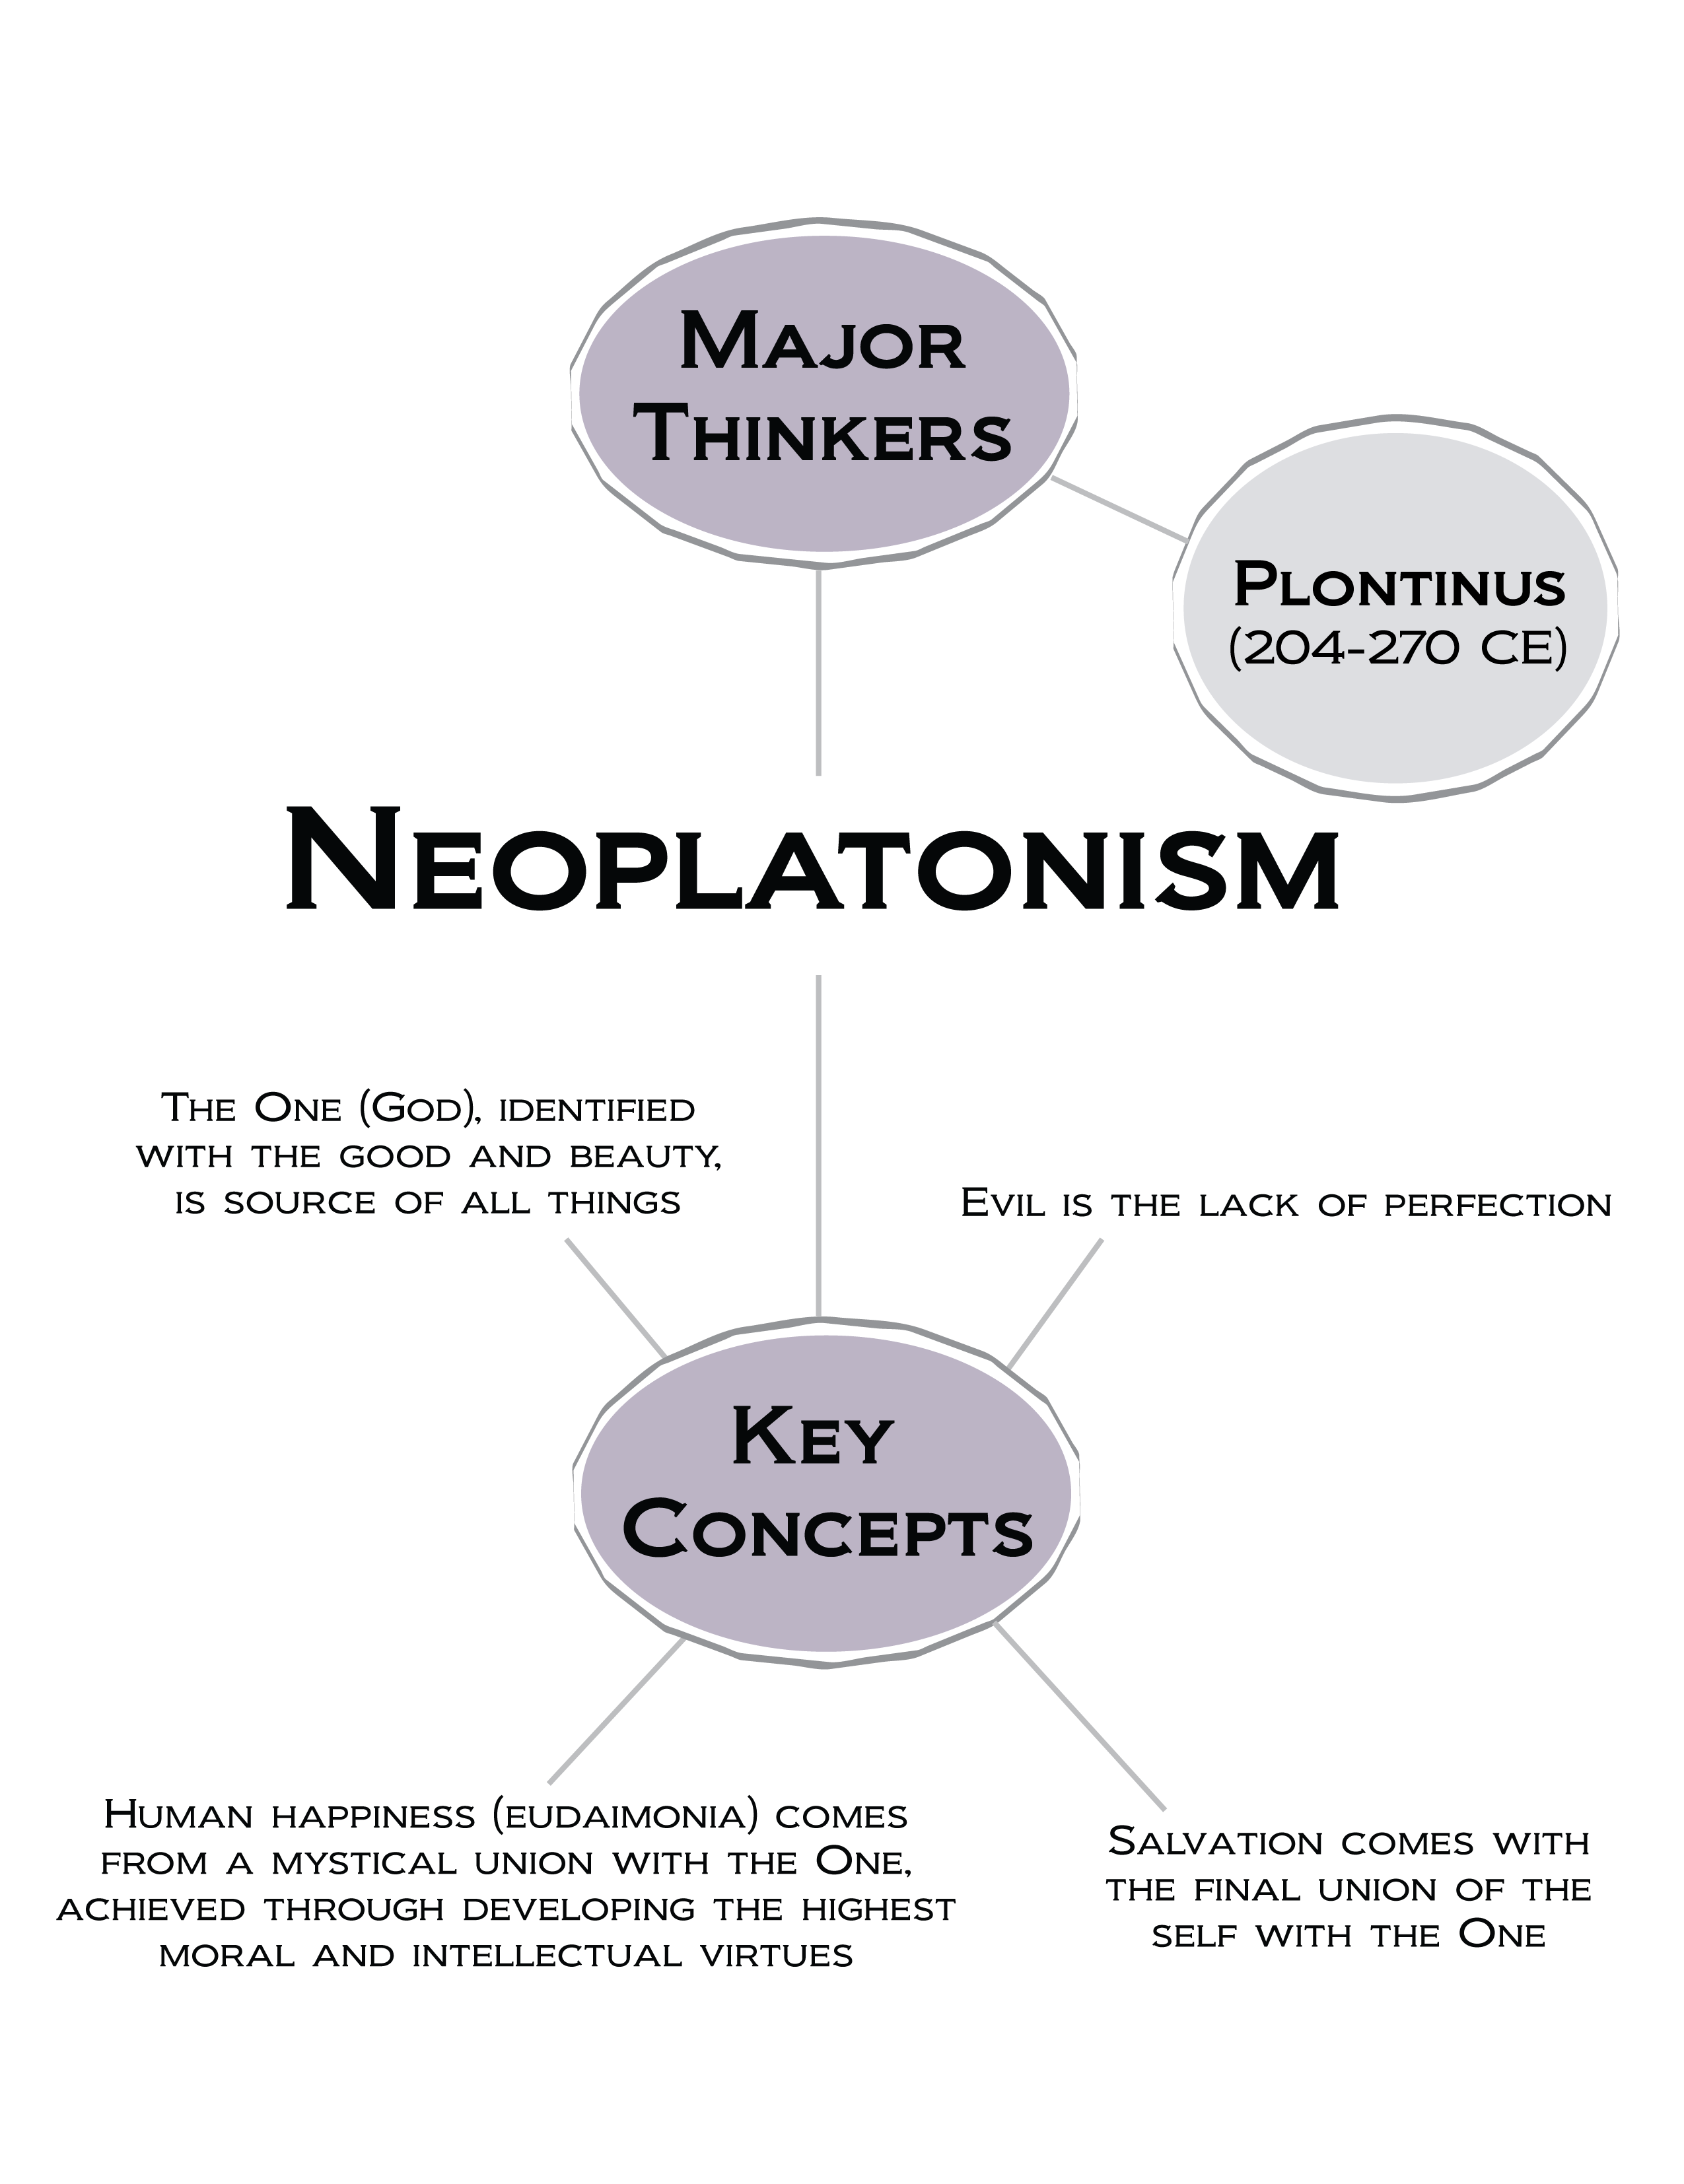 the characteristics of neoplatonism a type of idealistic monism How does fundamental physics tie into the mystery of consciousness and what does all of this have to do with christian theology recent research into quantum gravity indicates that the fabric of space-time may be an elaborate illusion, a result which lends weight to an idealist picture of reality hinted at in.